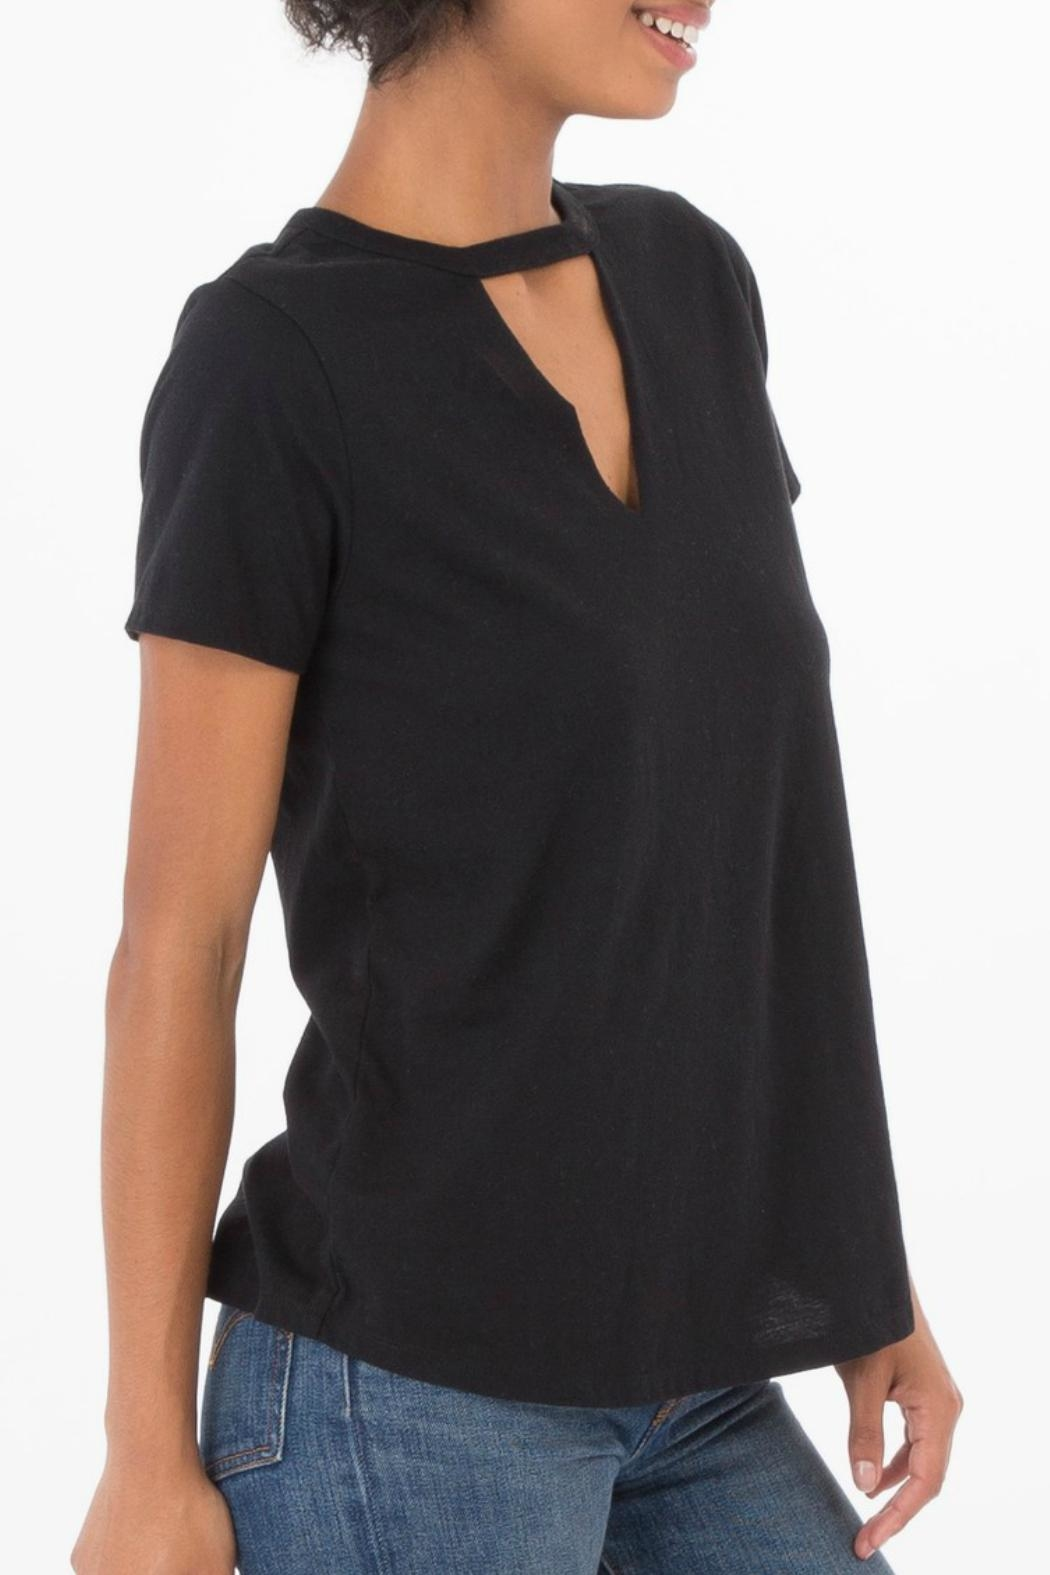 z supply Cutout Choker Tee - Front Full Image